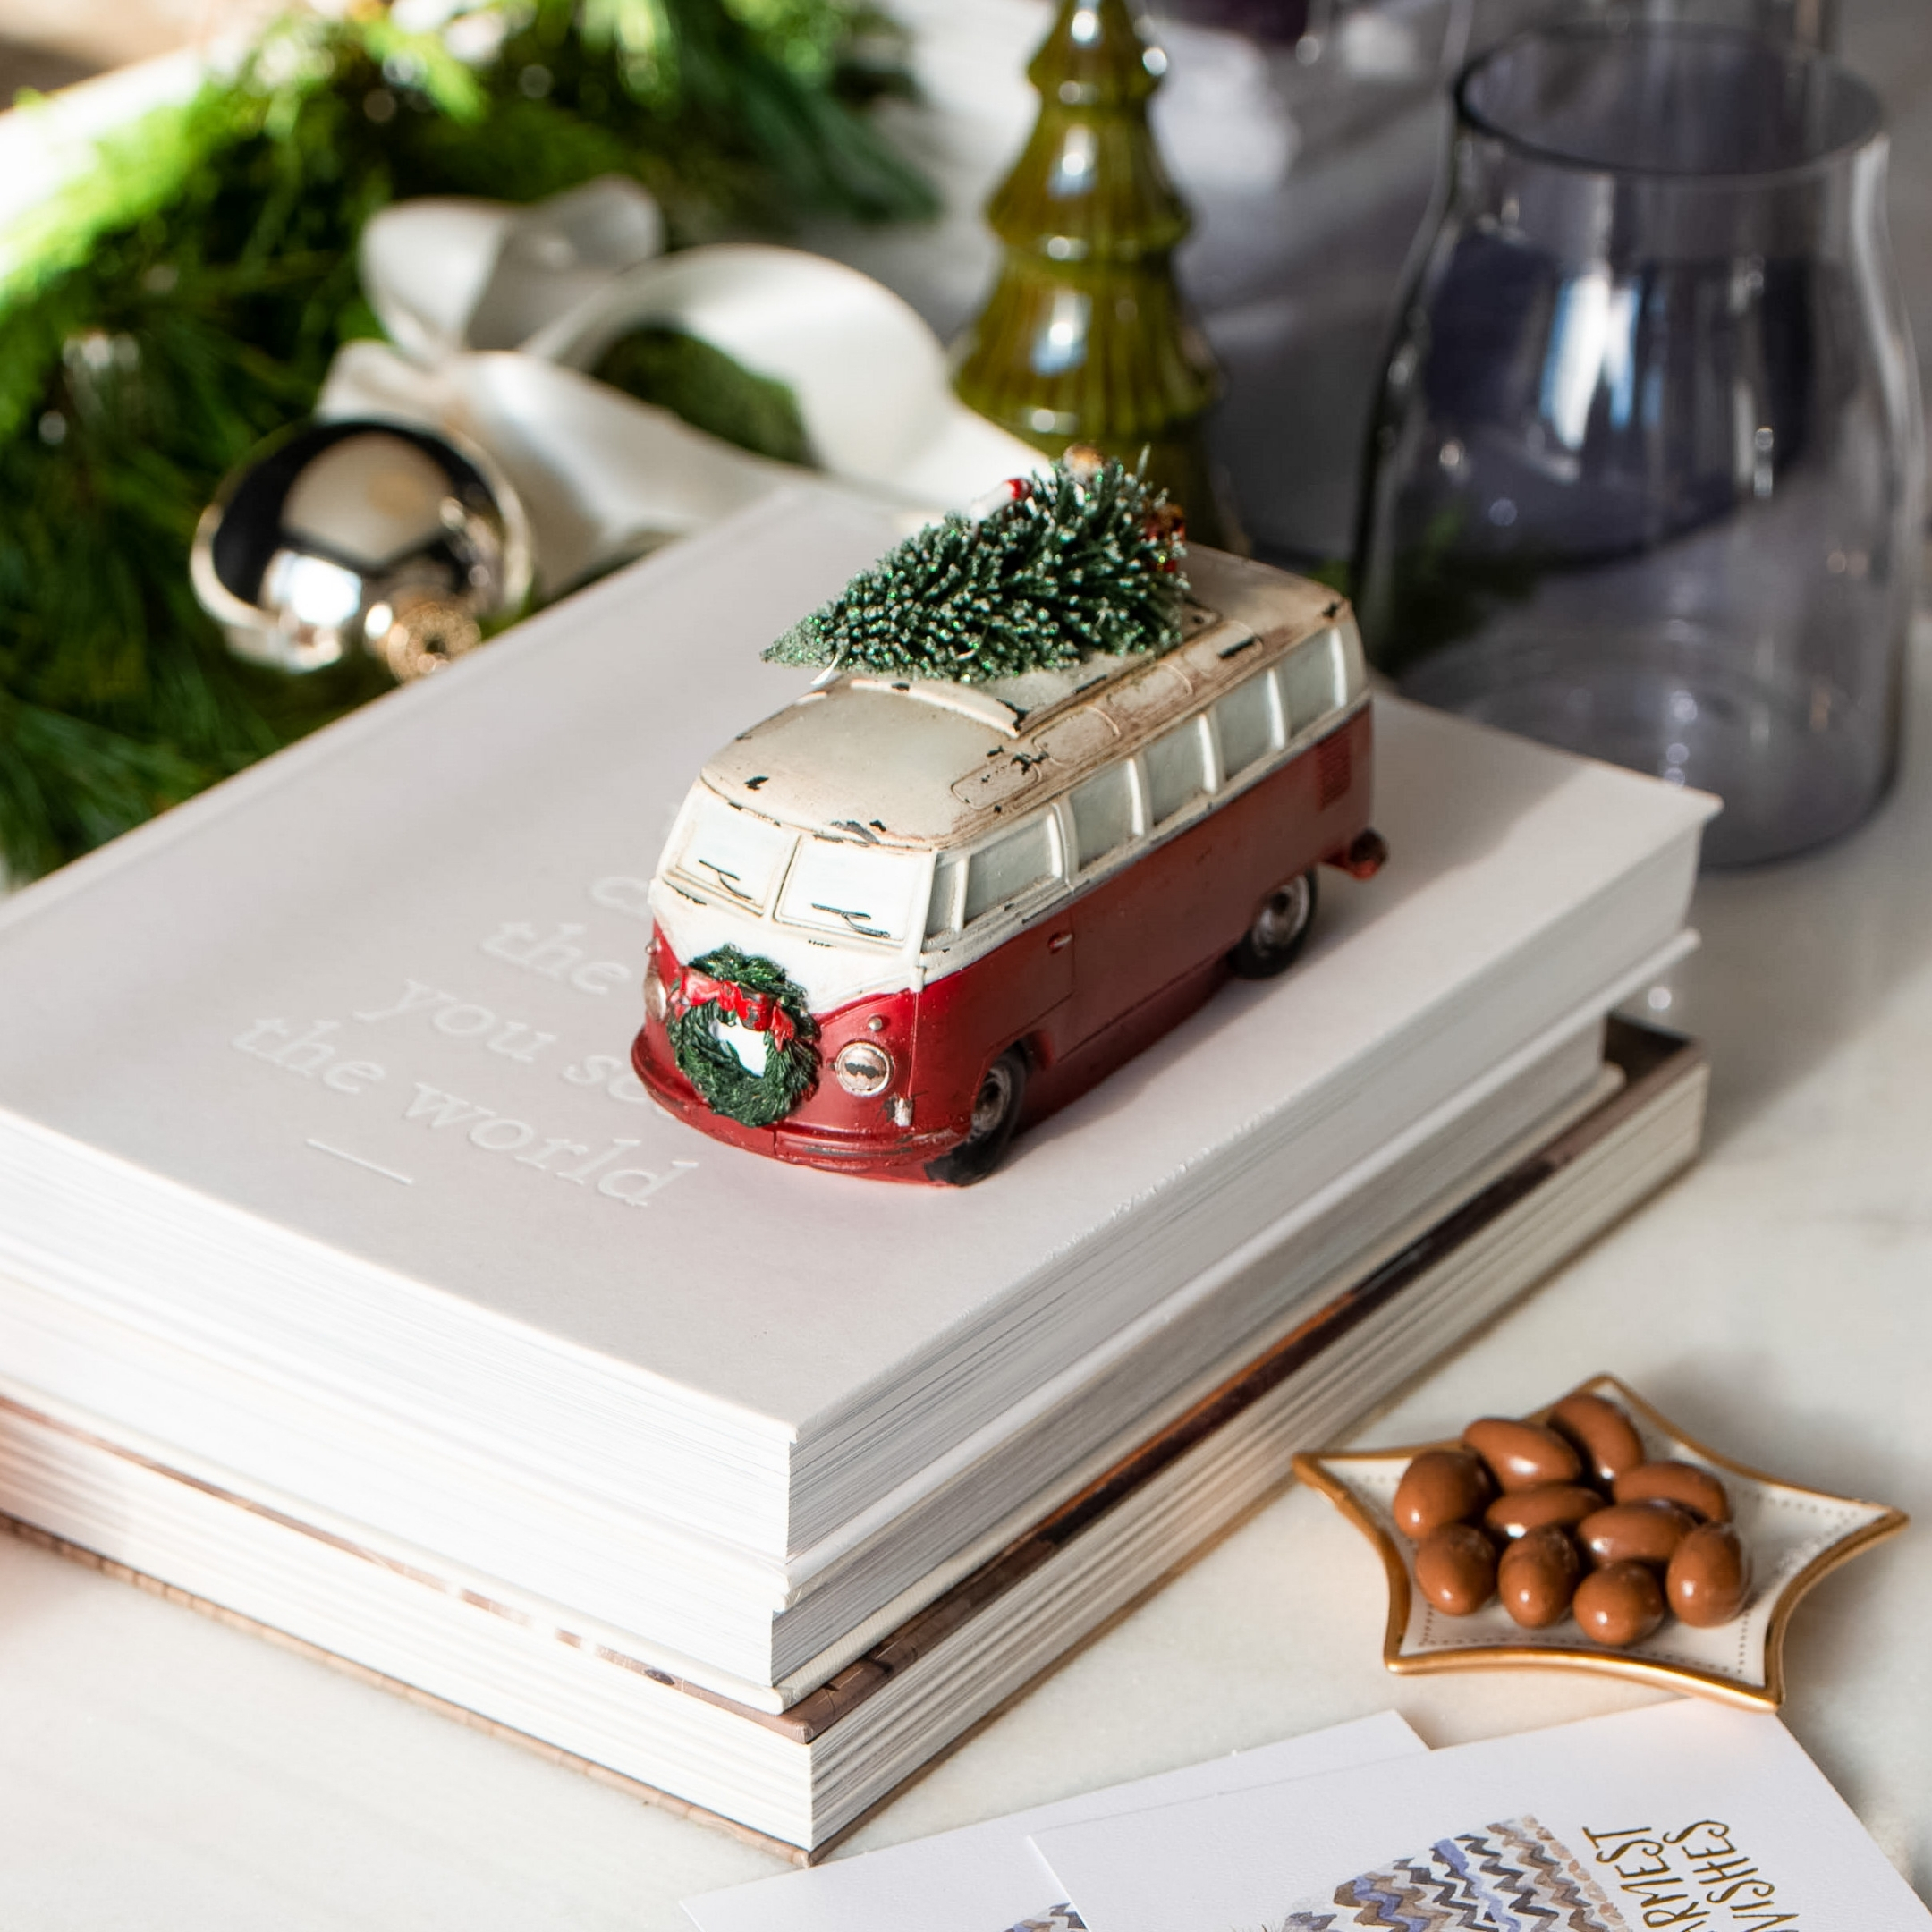 Christmas Inspired Image showing a red and white van carrying a Christmas tree ornament